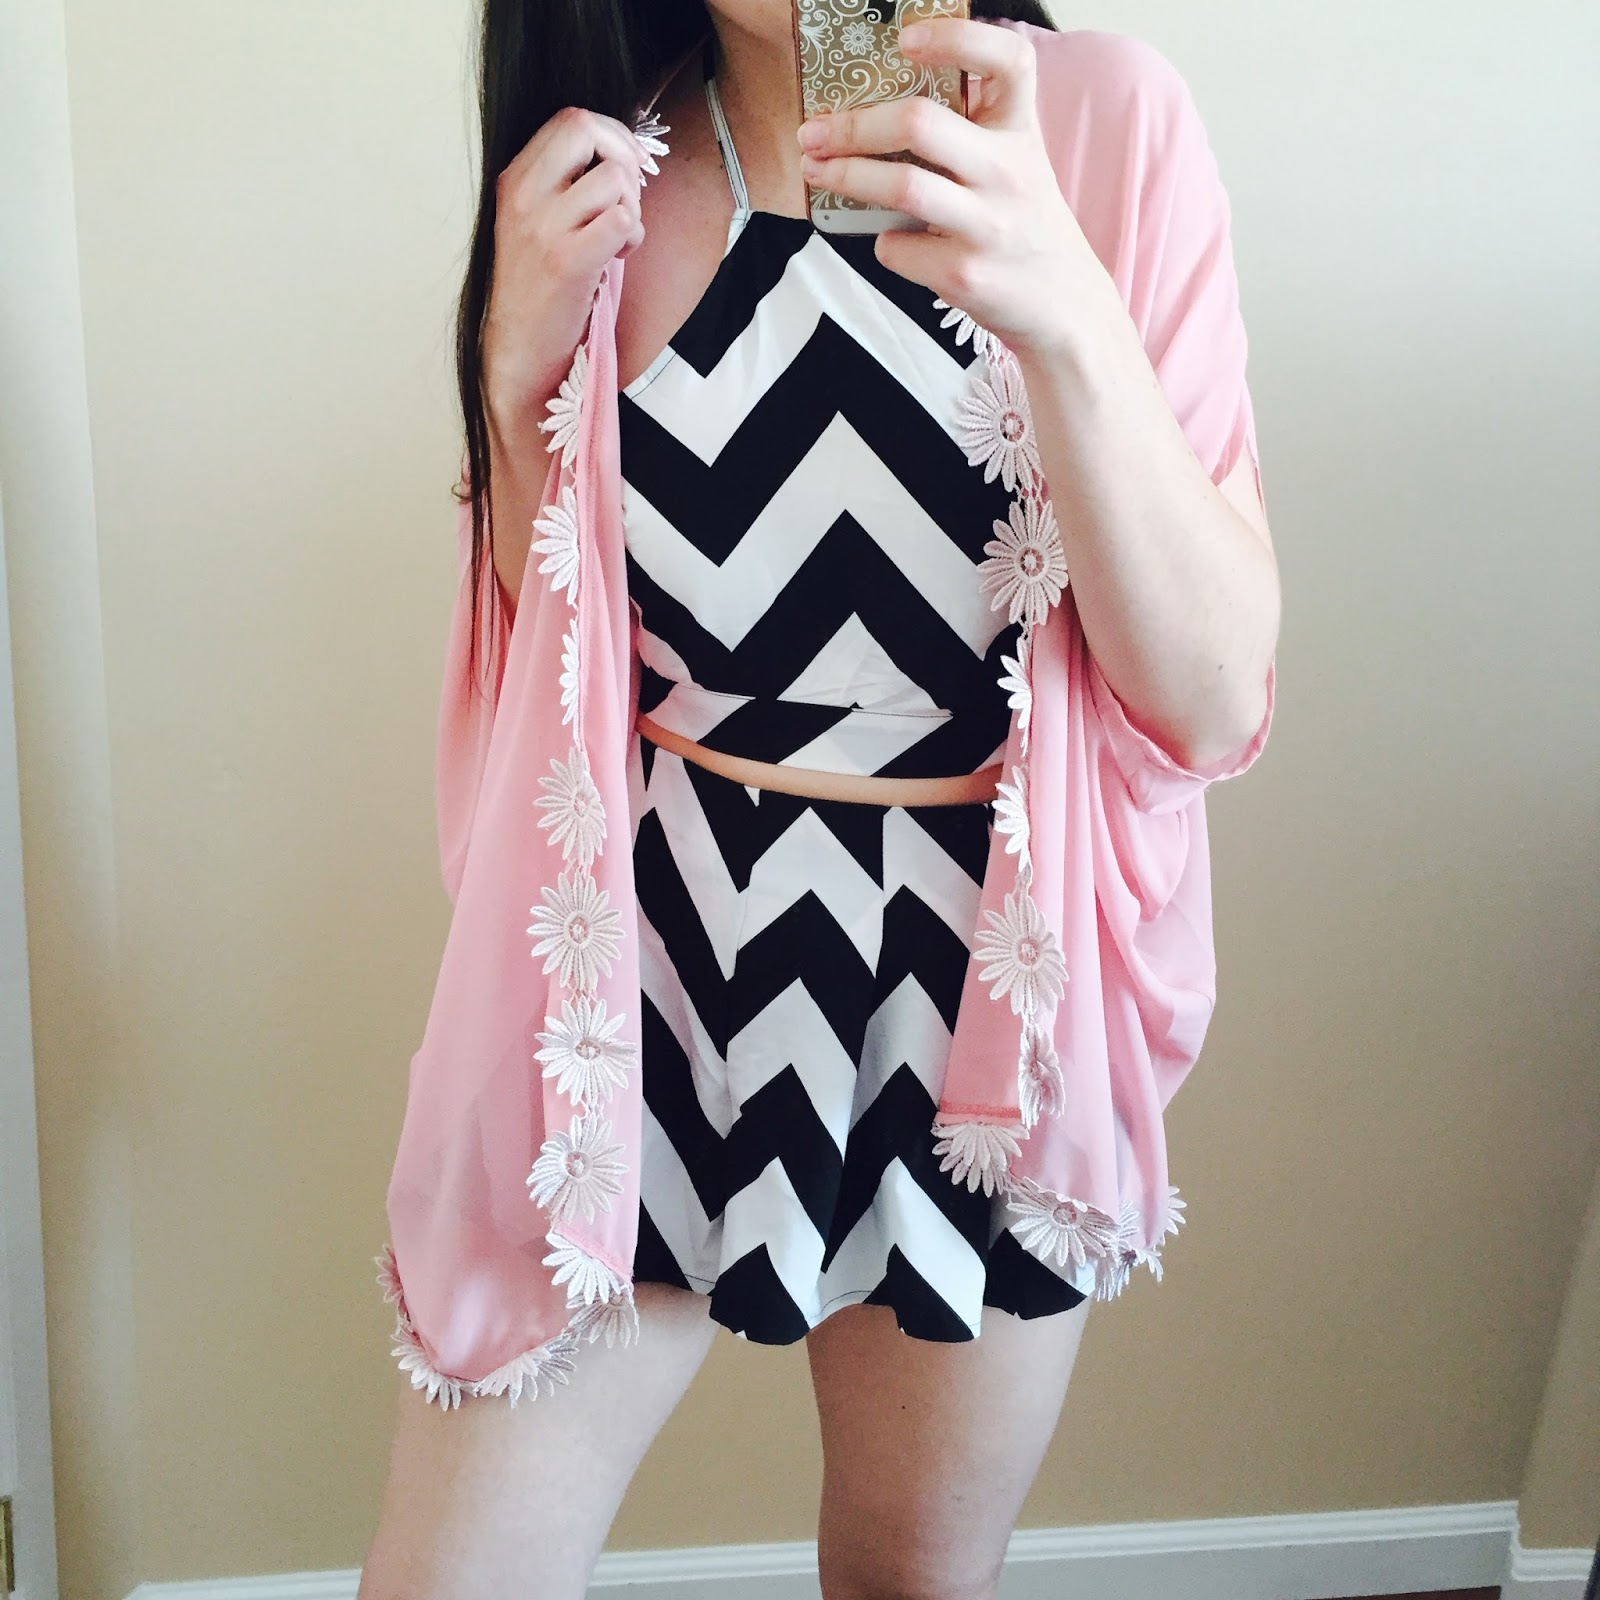 2 piece suits, chevron play suit, playsuit, chevron playsuit, cute outfit, chevron 2 piece, shorts and tank top outfit,